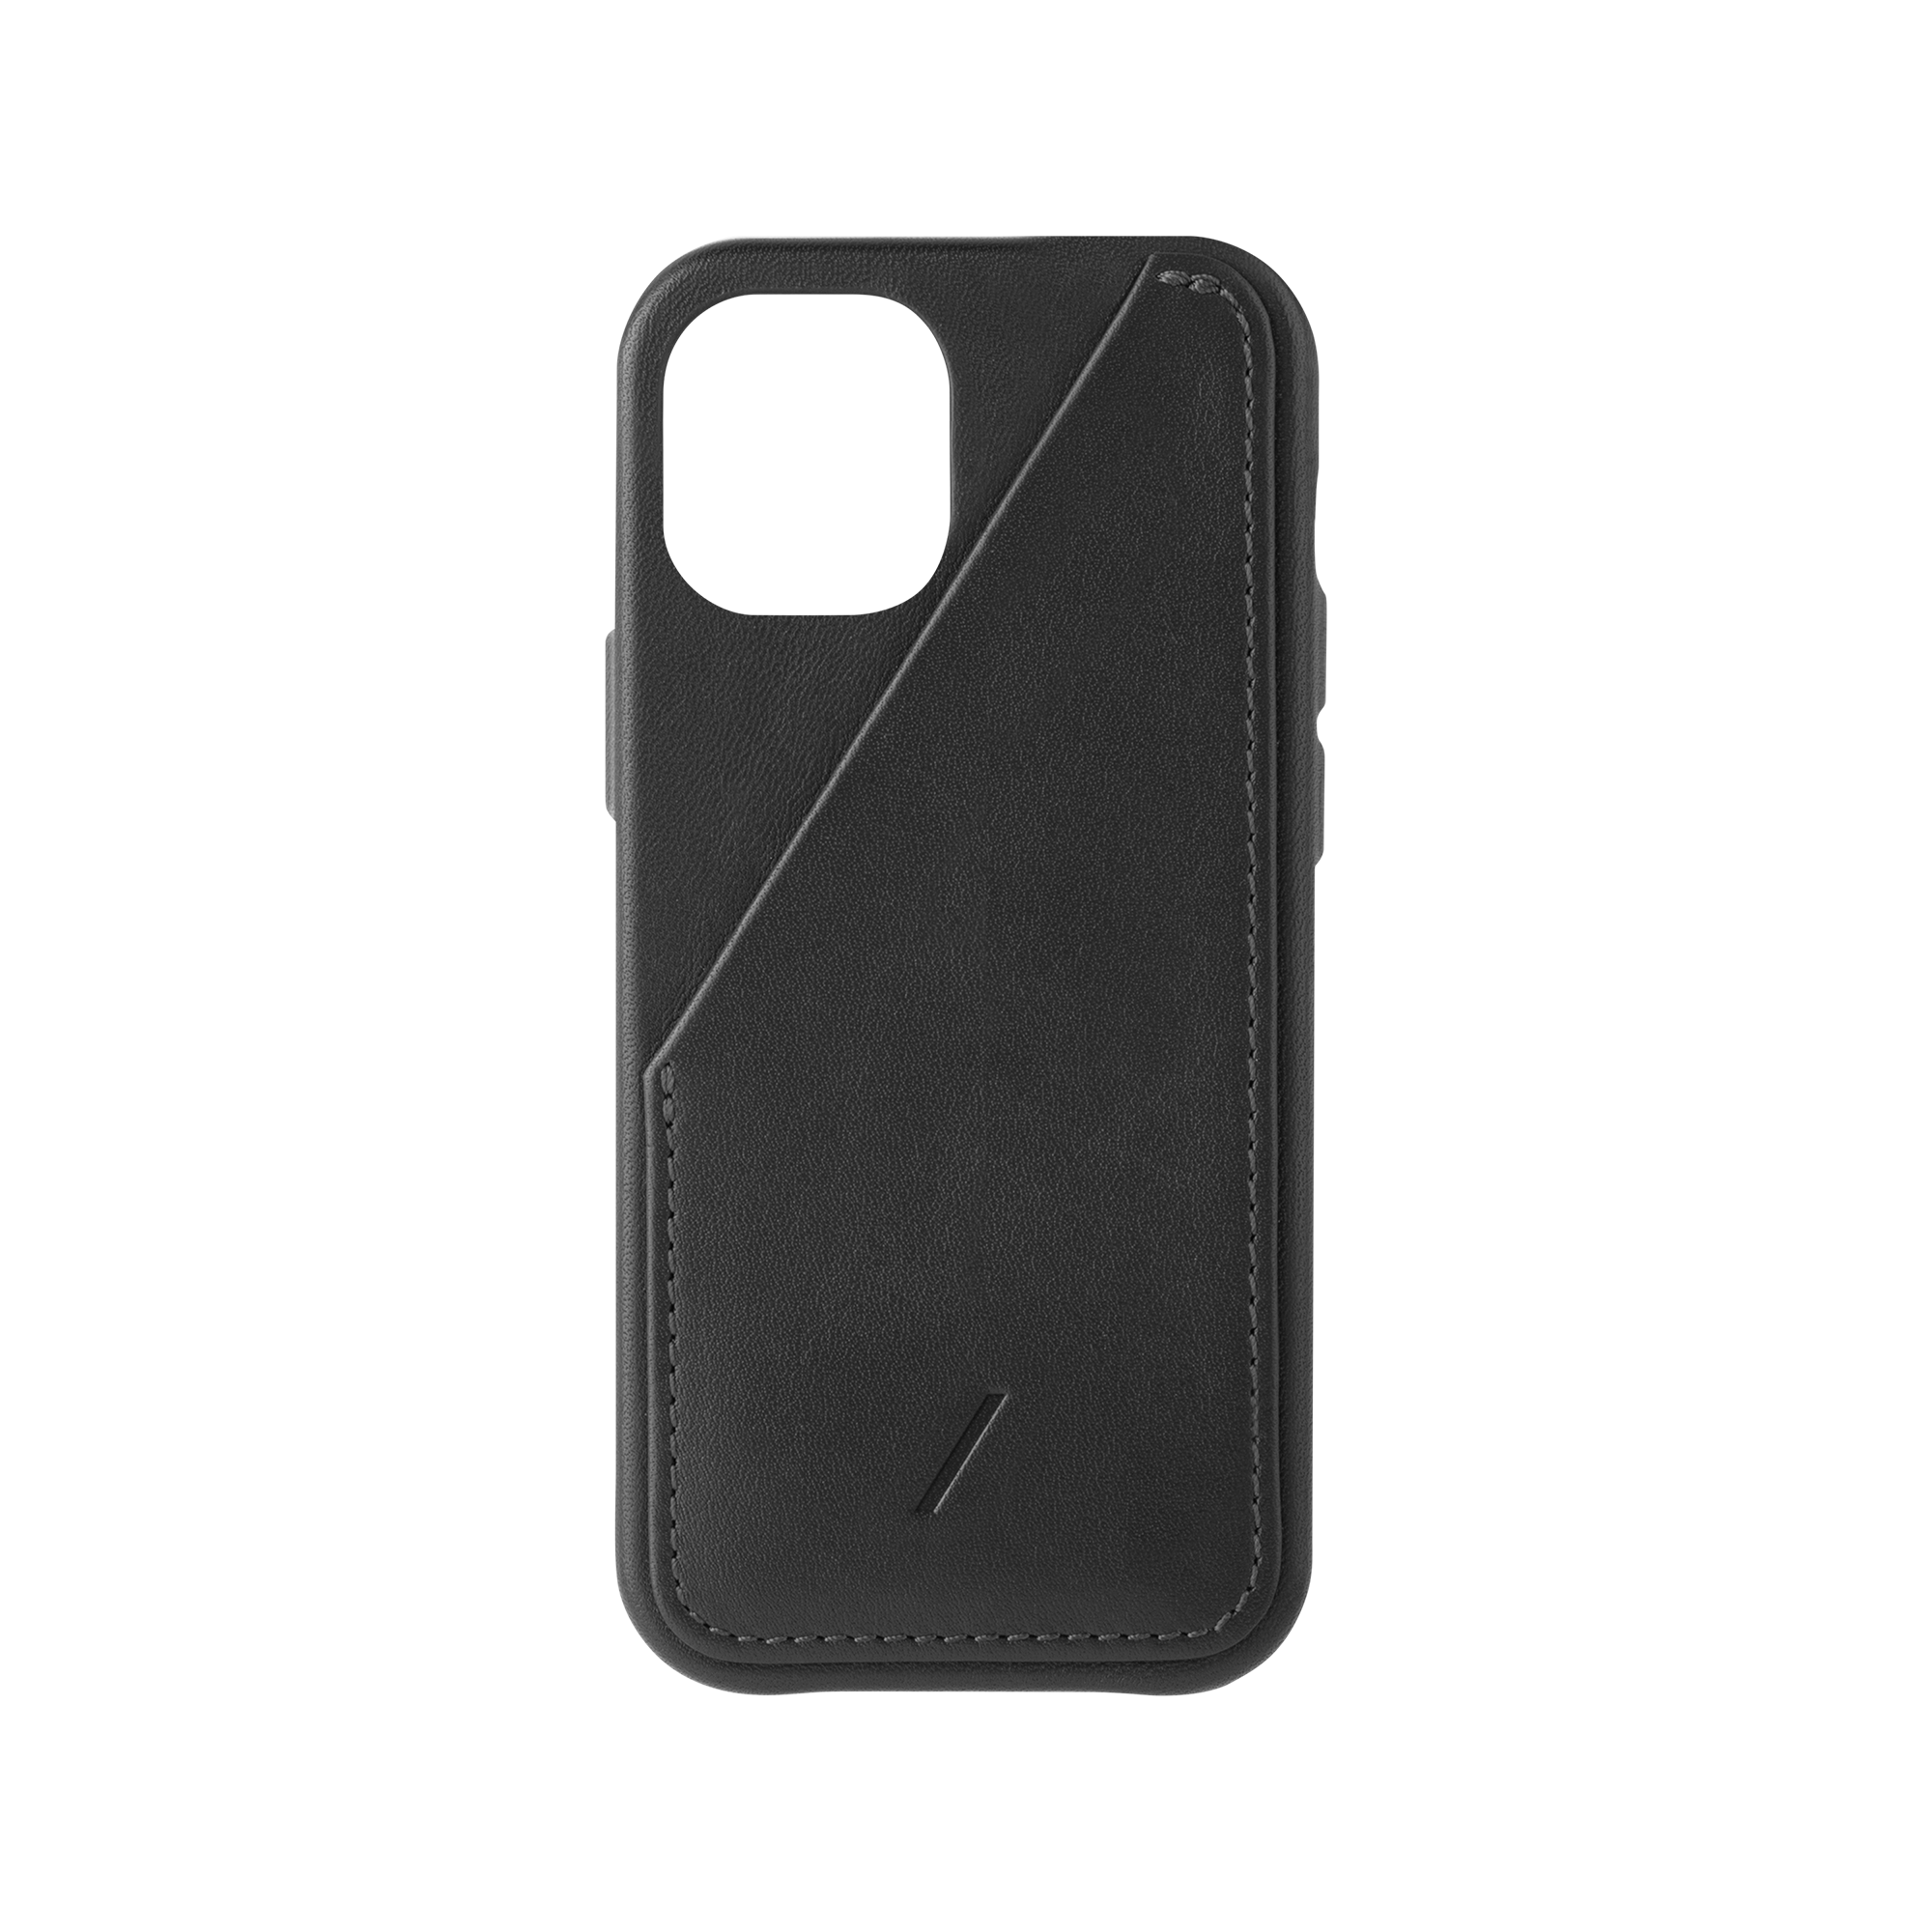 34316683673739,Clic Card (iPhone 12 Mini) - Black